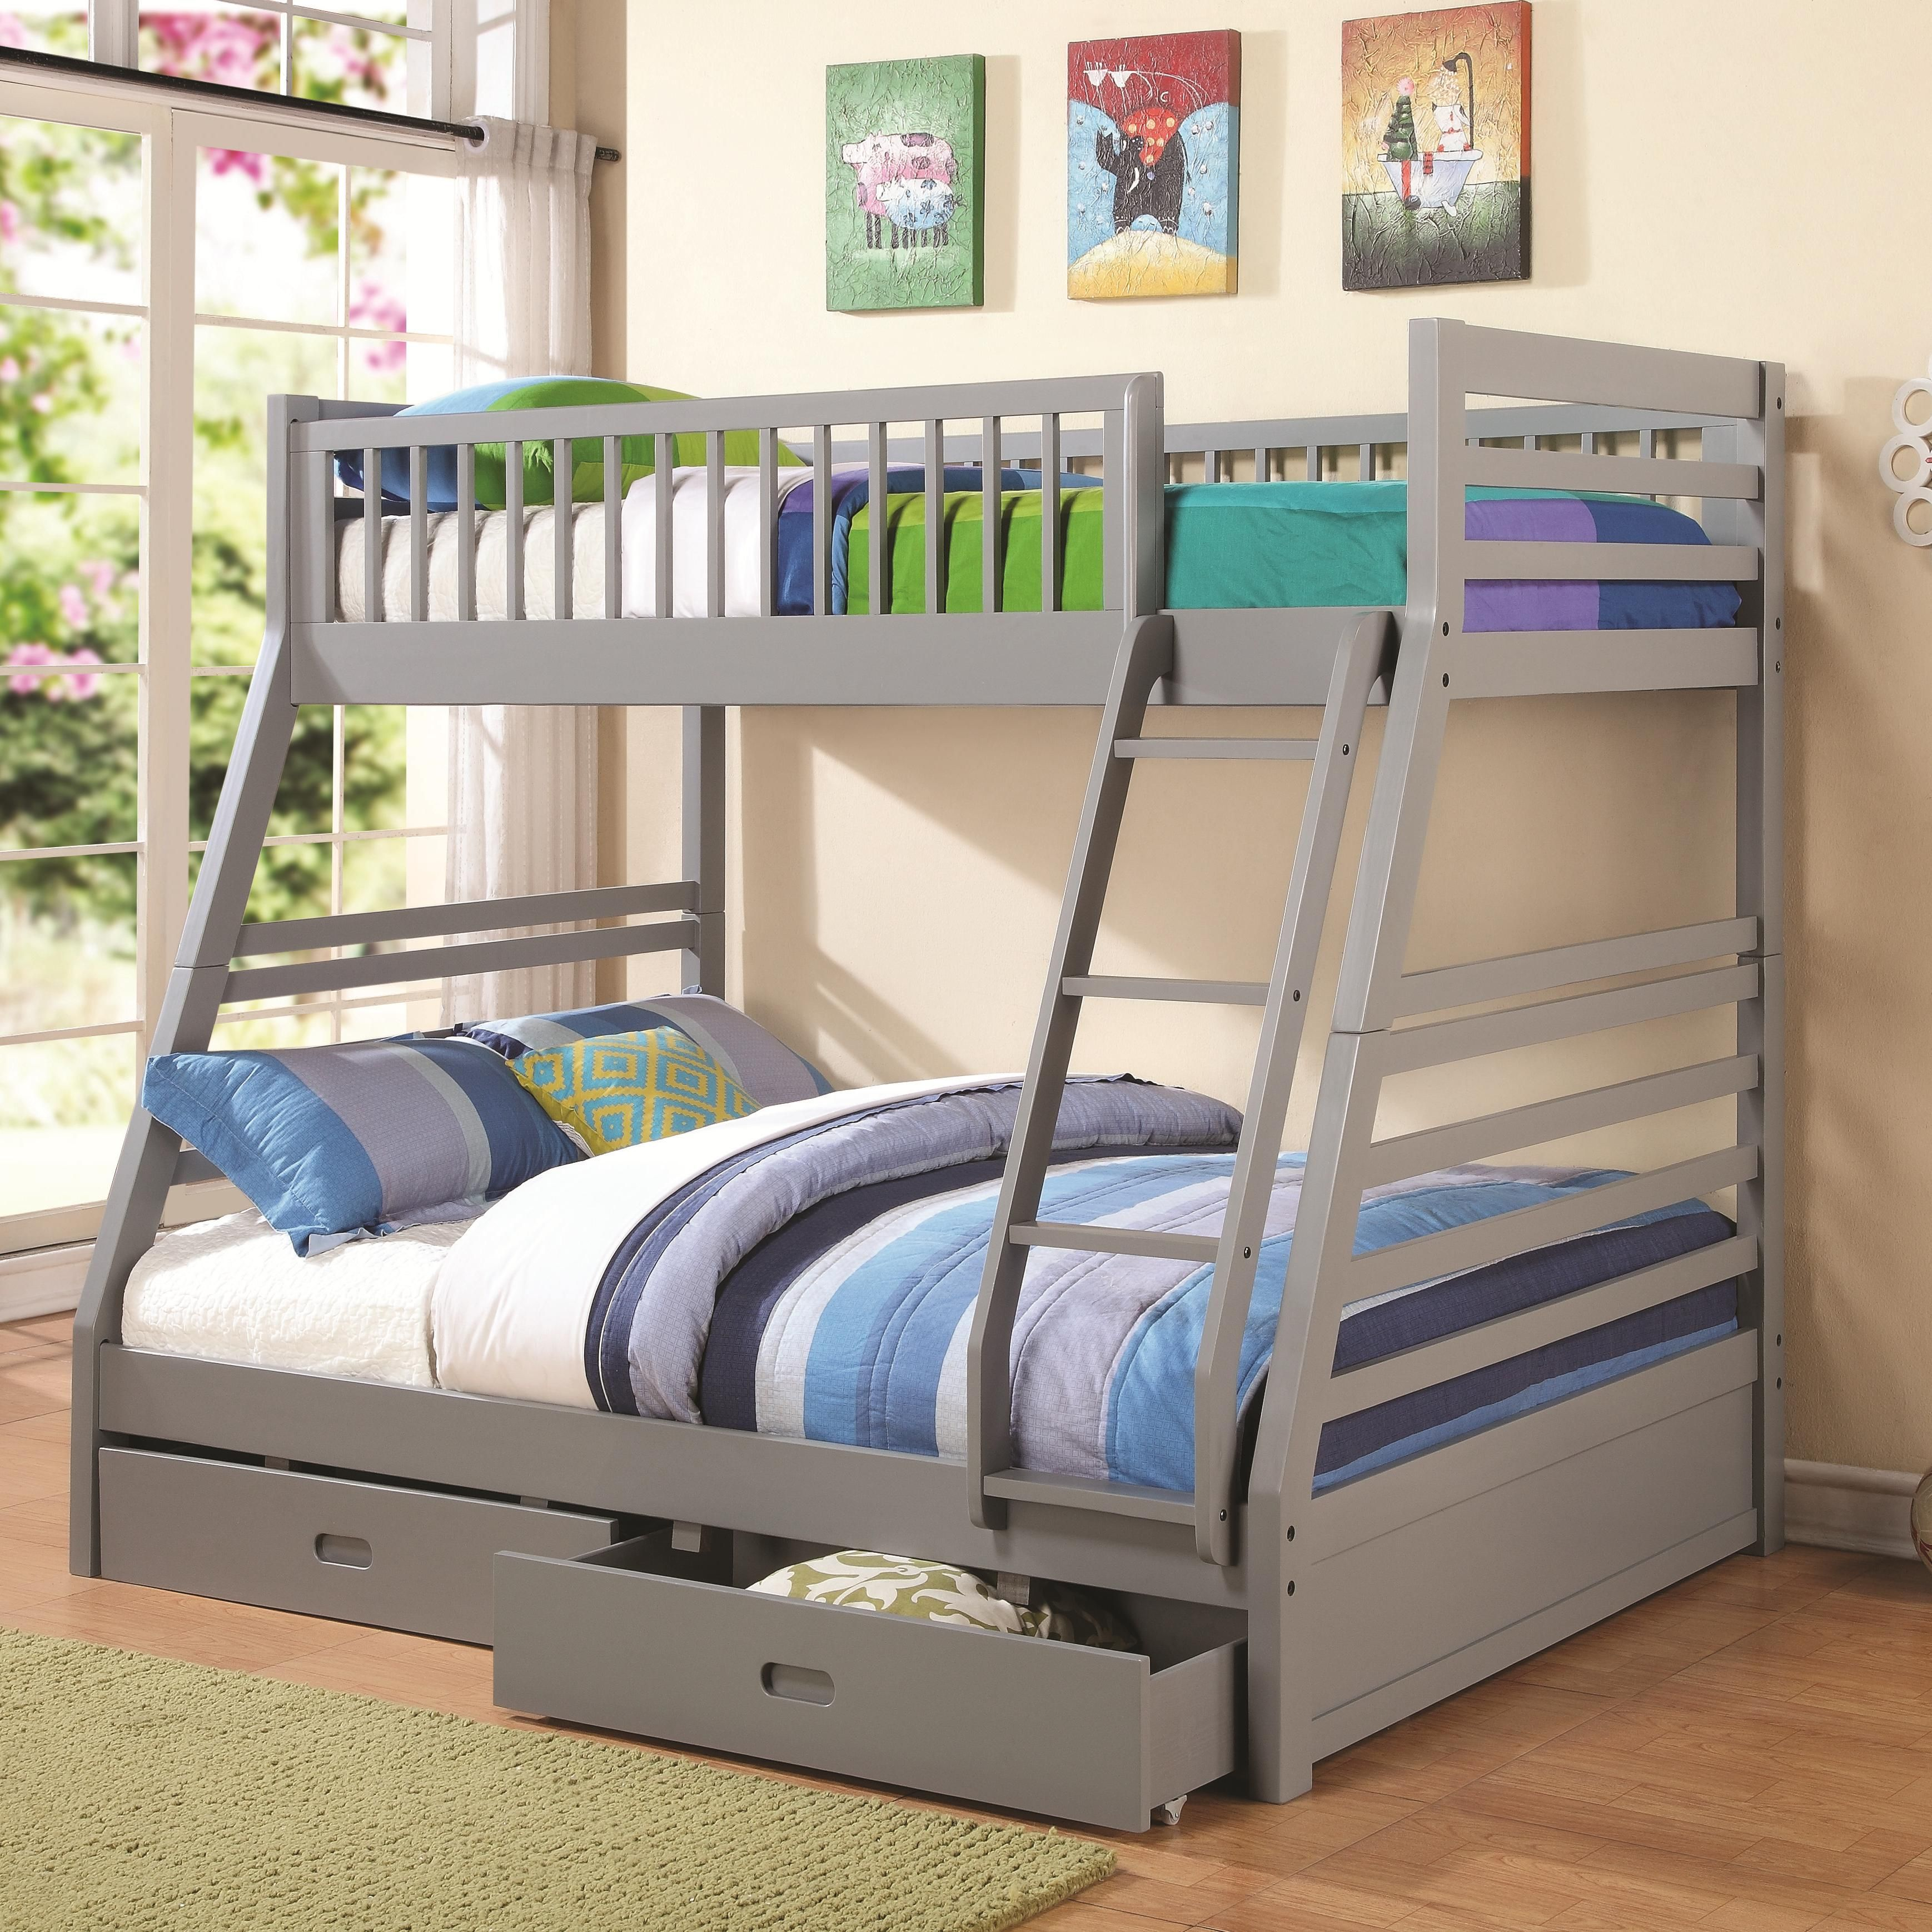 Coaster Bunks Twin Over Full Bunk Bed With 2 Drawers And Attached